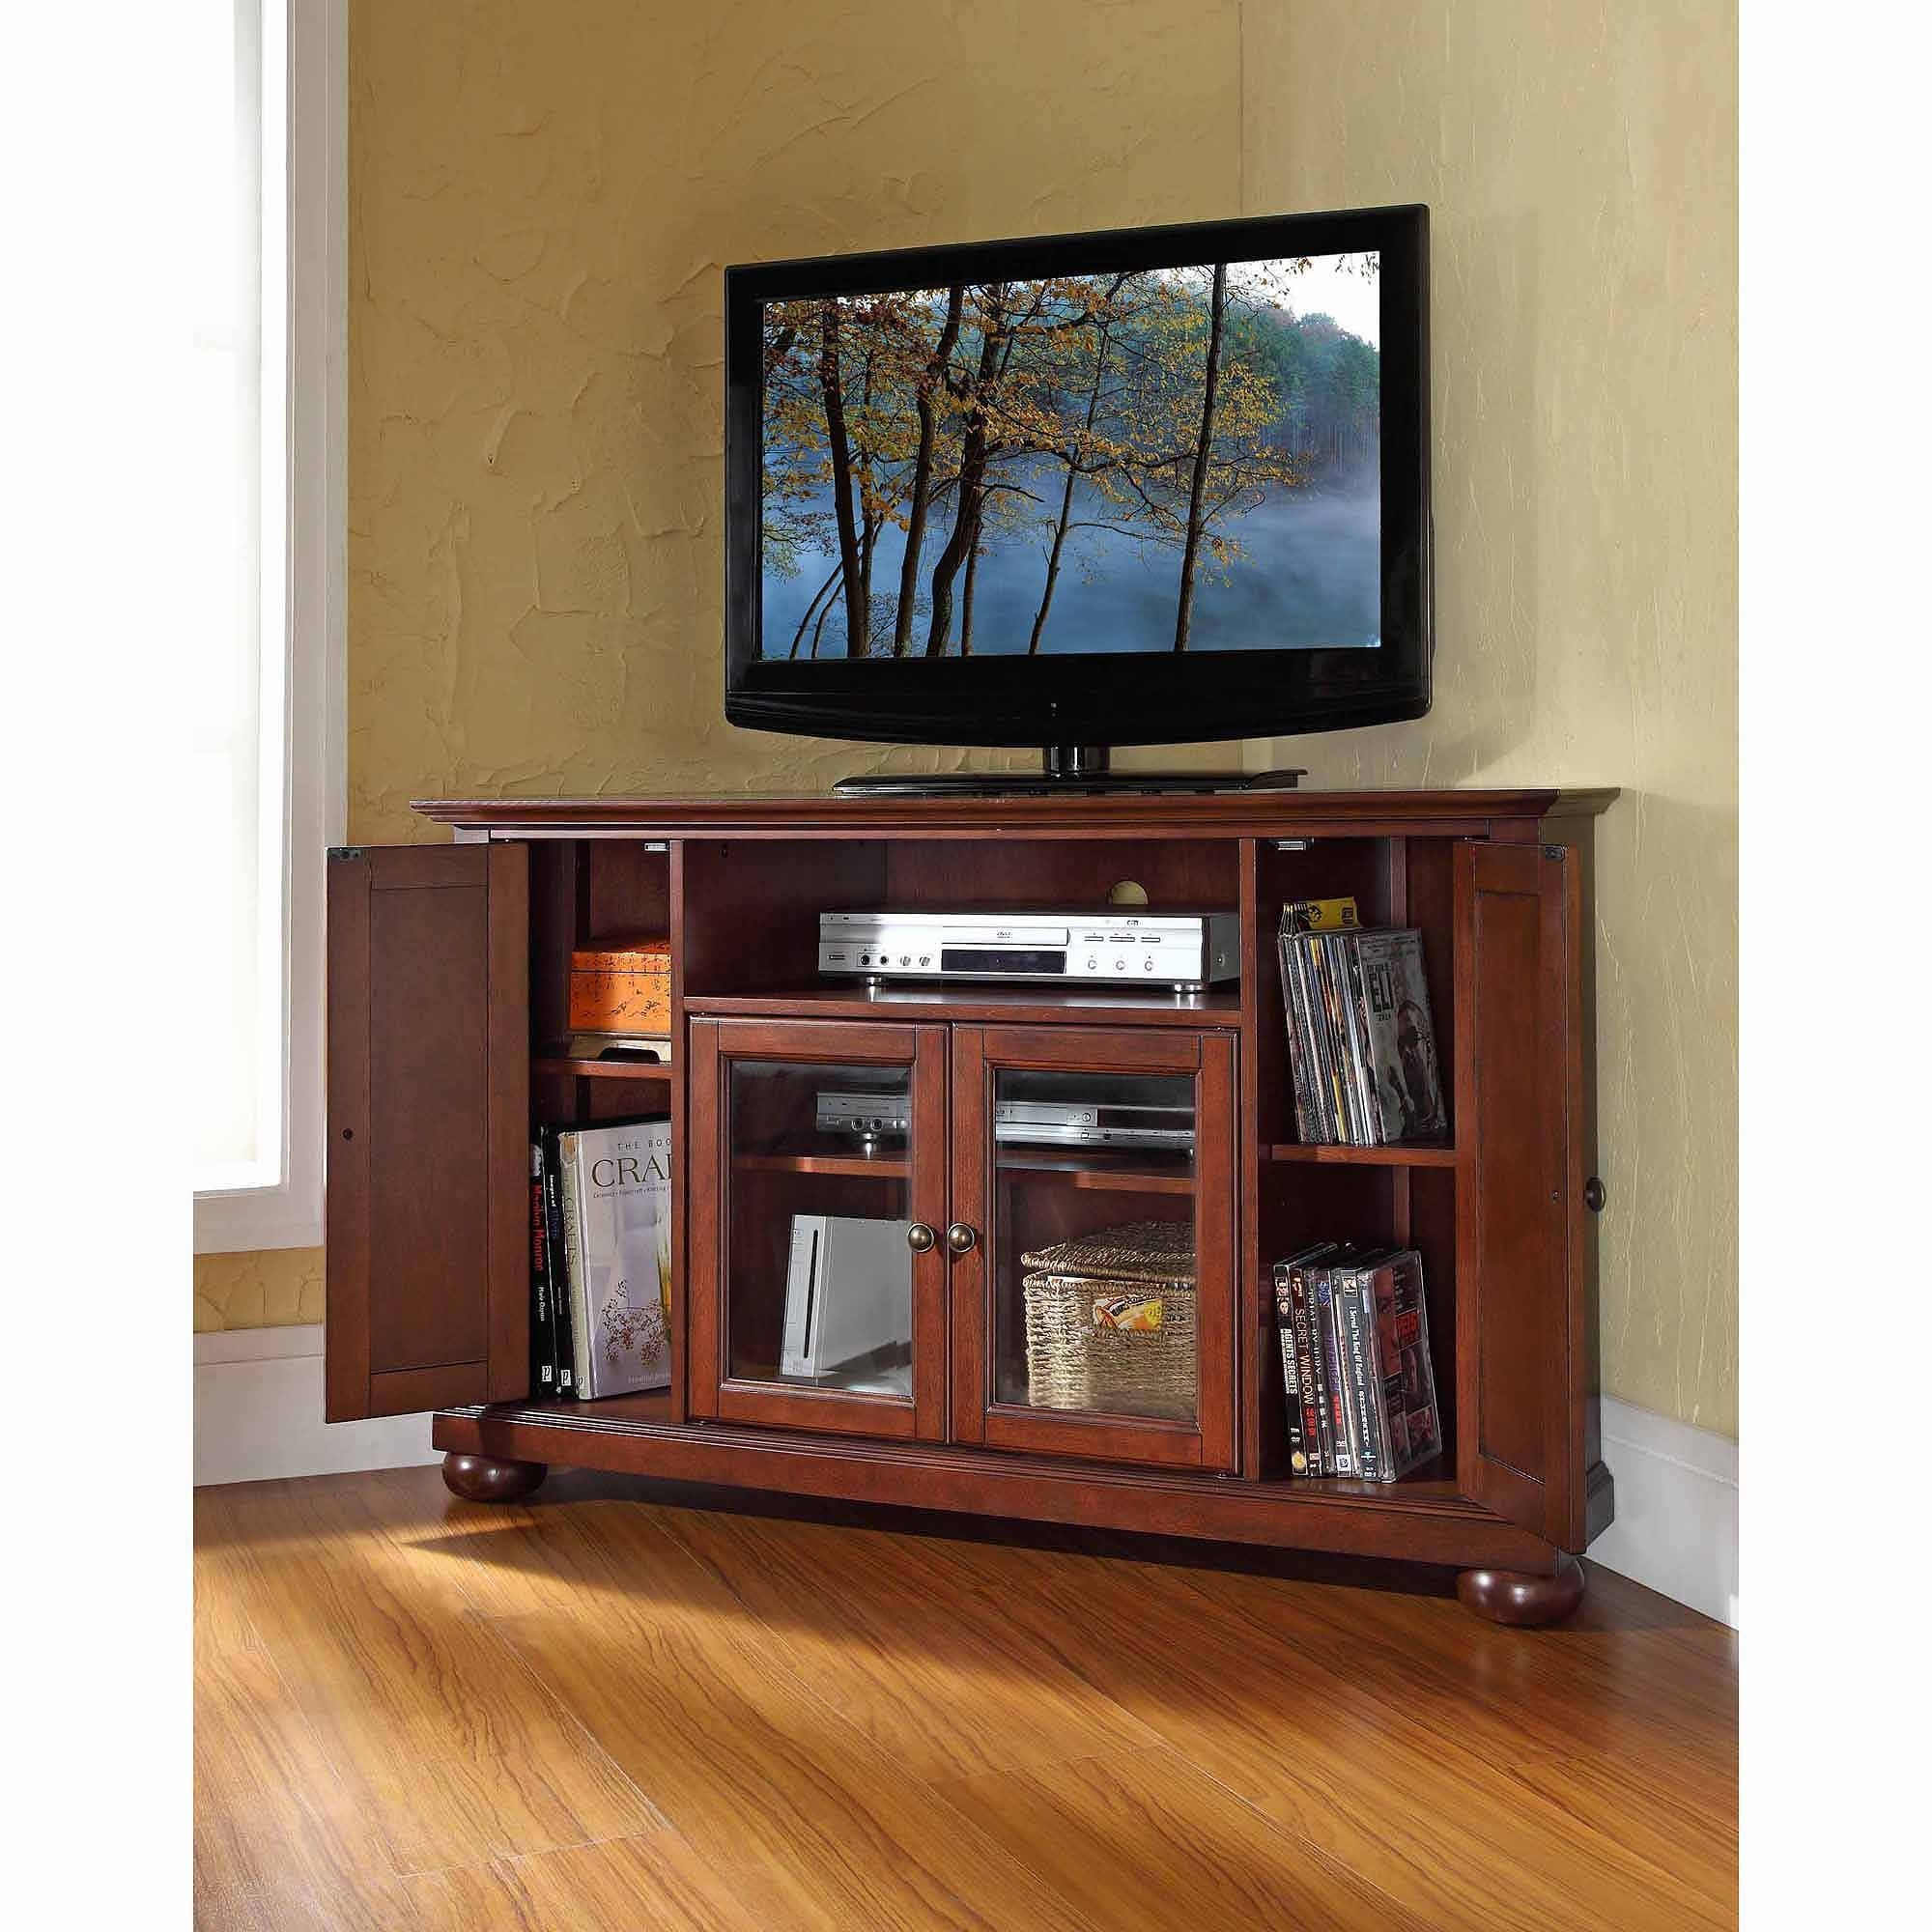 Crosley Furniture Alexandria Corner Tv Stand For Tvs Up To 48 Inside Corner Tv Stands For 55 Inch Tv (View 4 of 15)